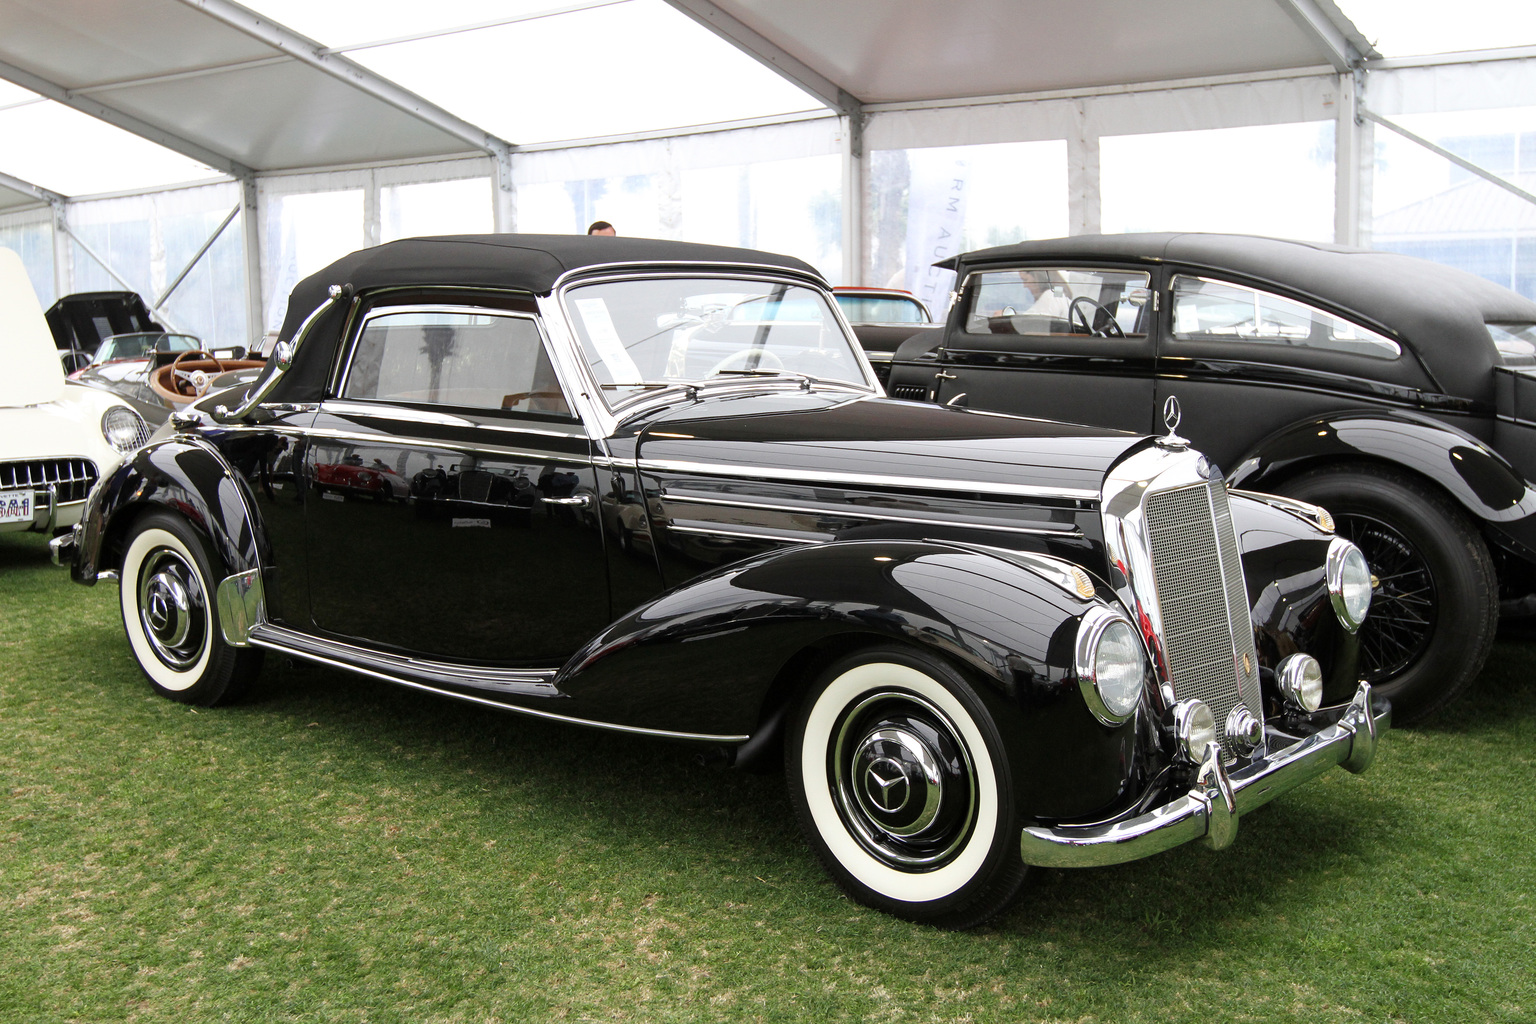 1951 mercedes benz 220 cabriolet a gallery gallery. Black Bedroom Furniture Sets. Home Design Ideas